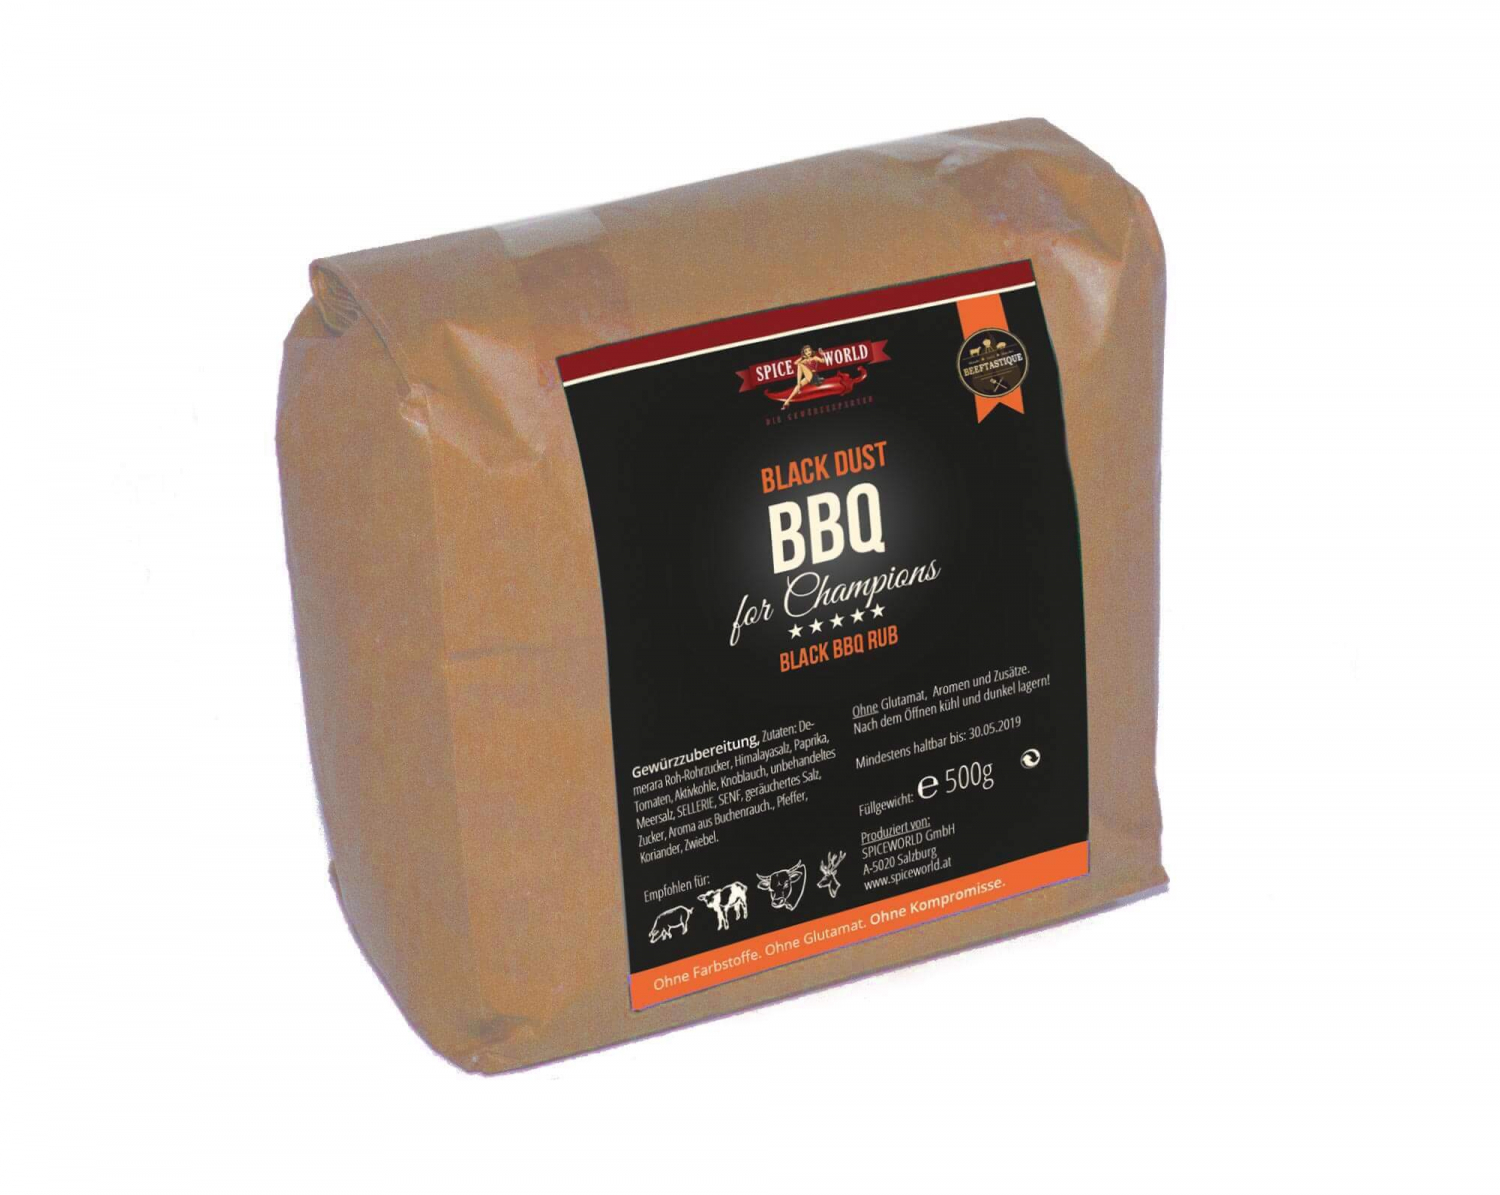 Barbecue for Champions - Black Dust - BBQ Rub - 500g Beutel 500g Beutel